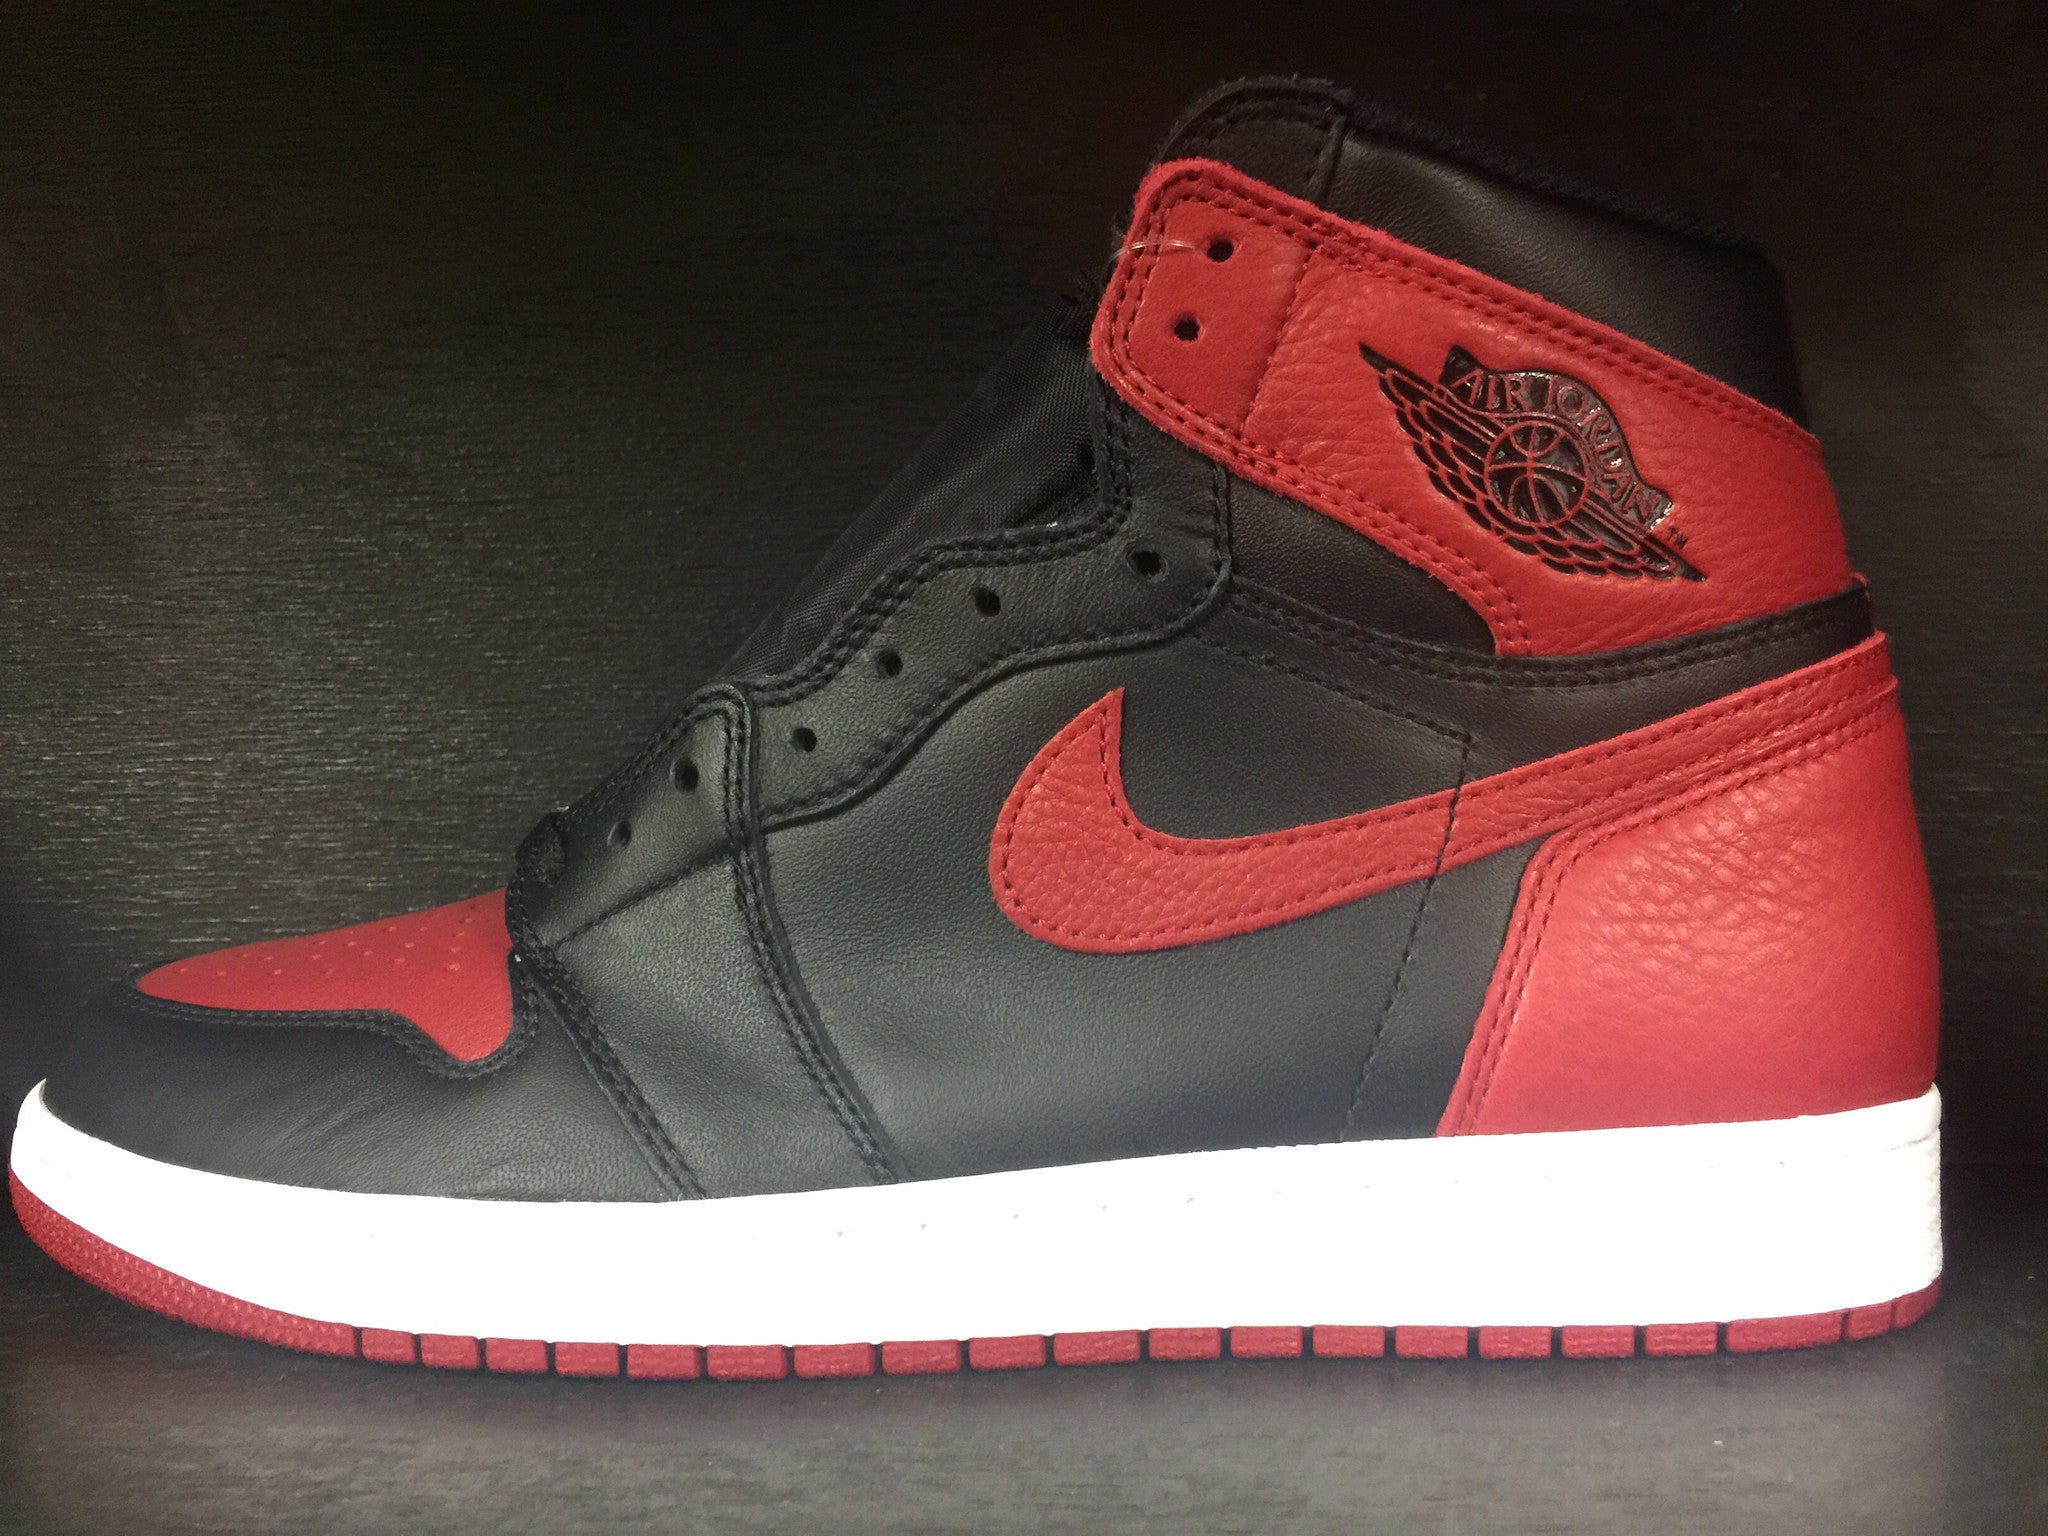 Air Jordan 1 Retro High OG 'Banned'